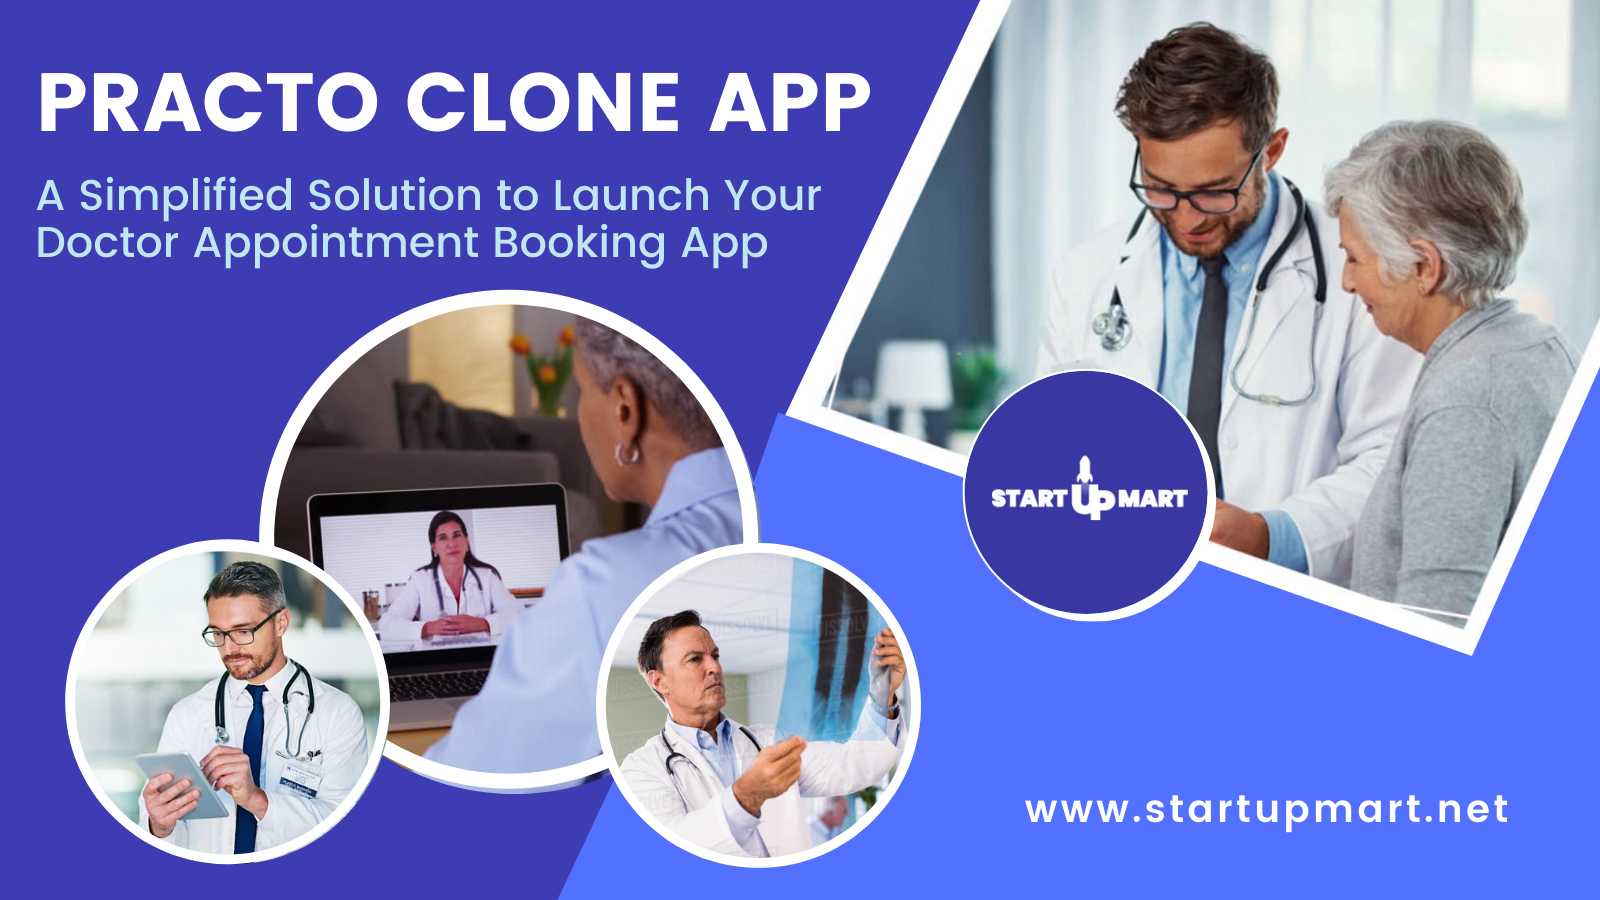 Practo Clone App - A Simplified Solution to Launch Your Doctor Appointment Booking App